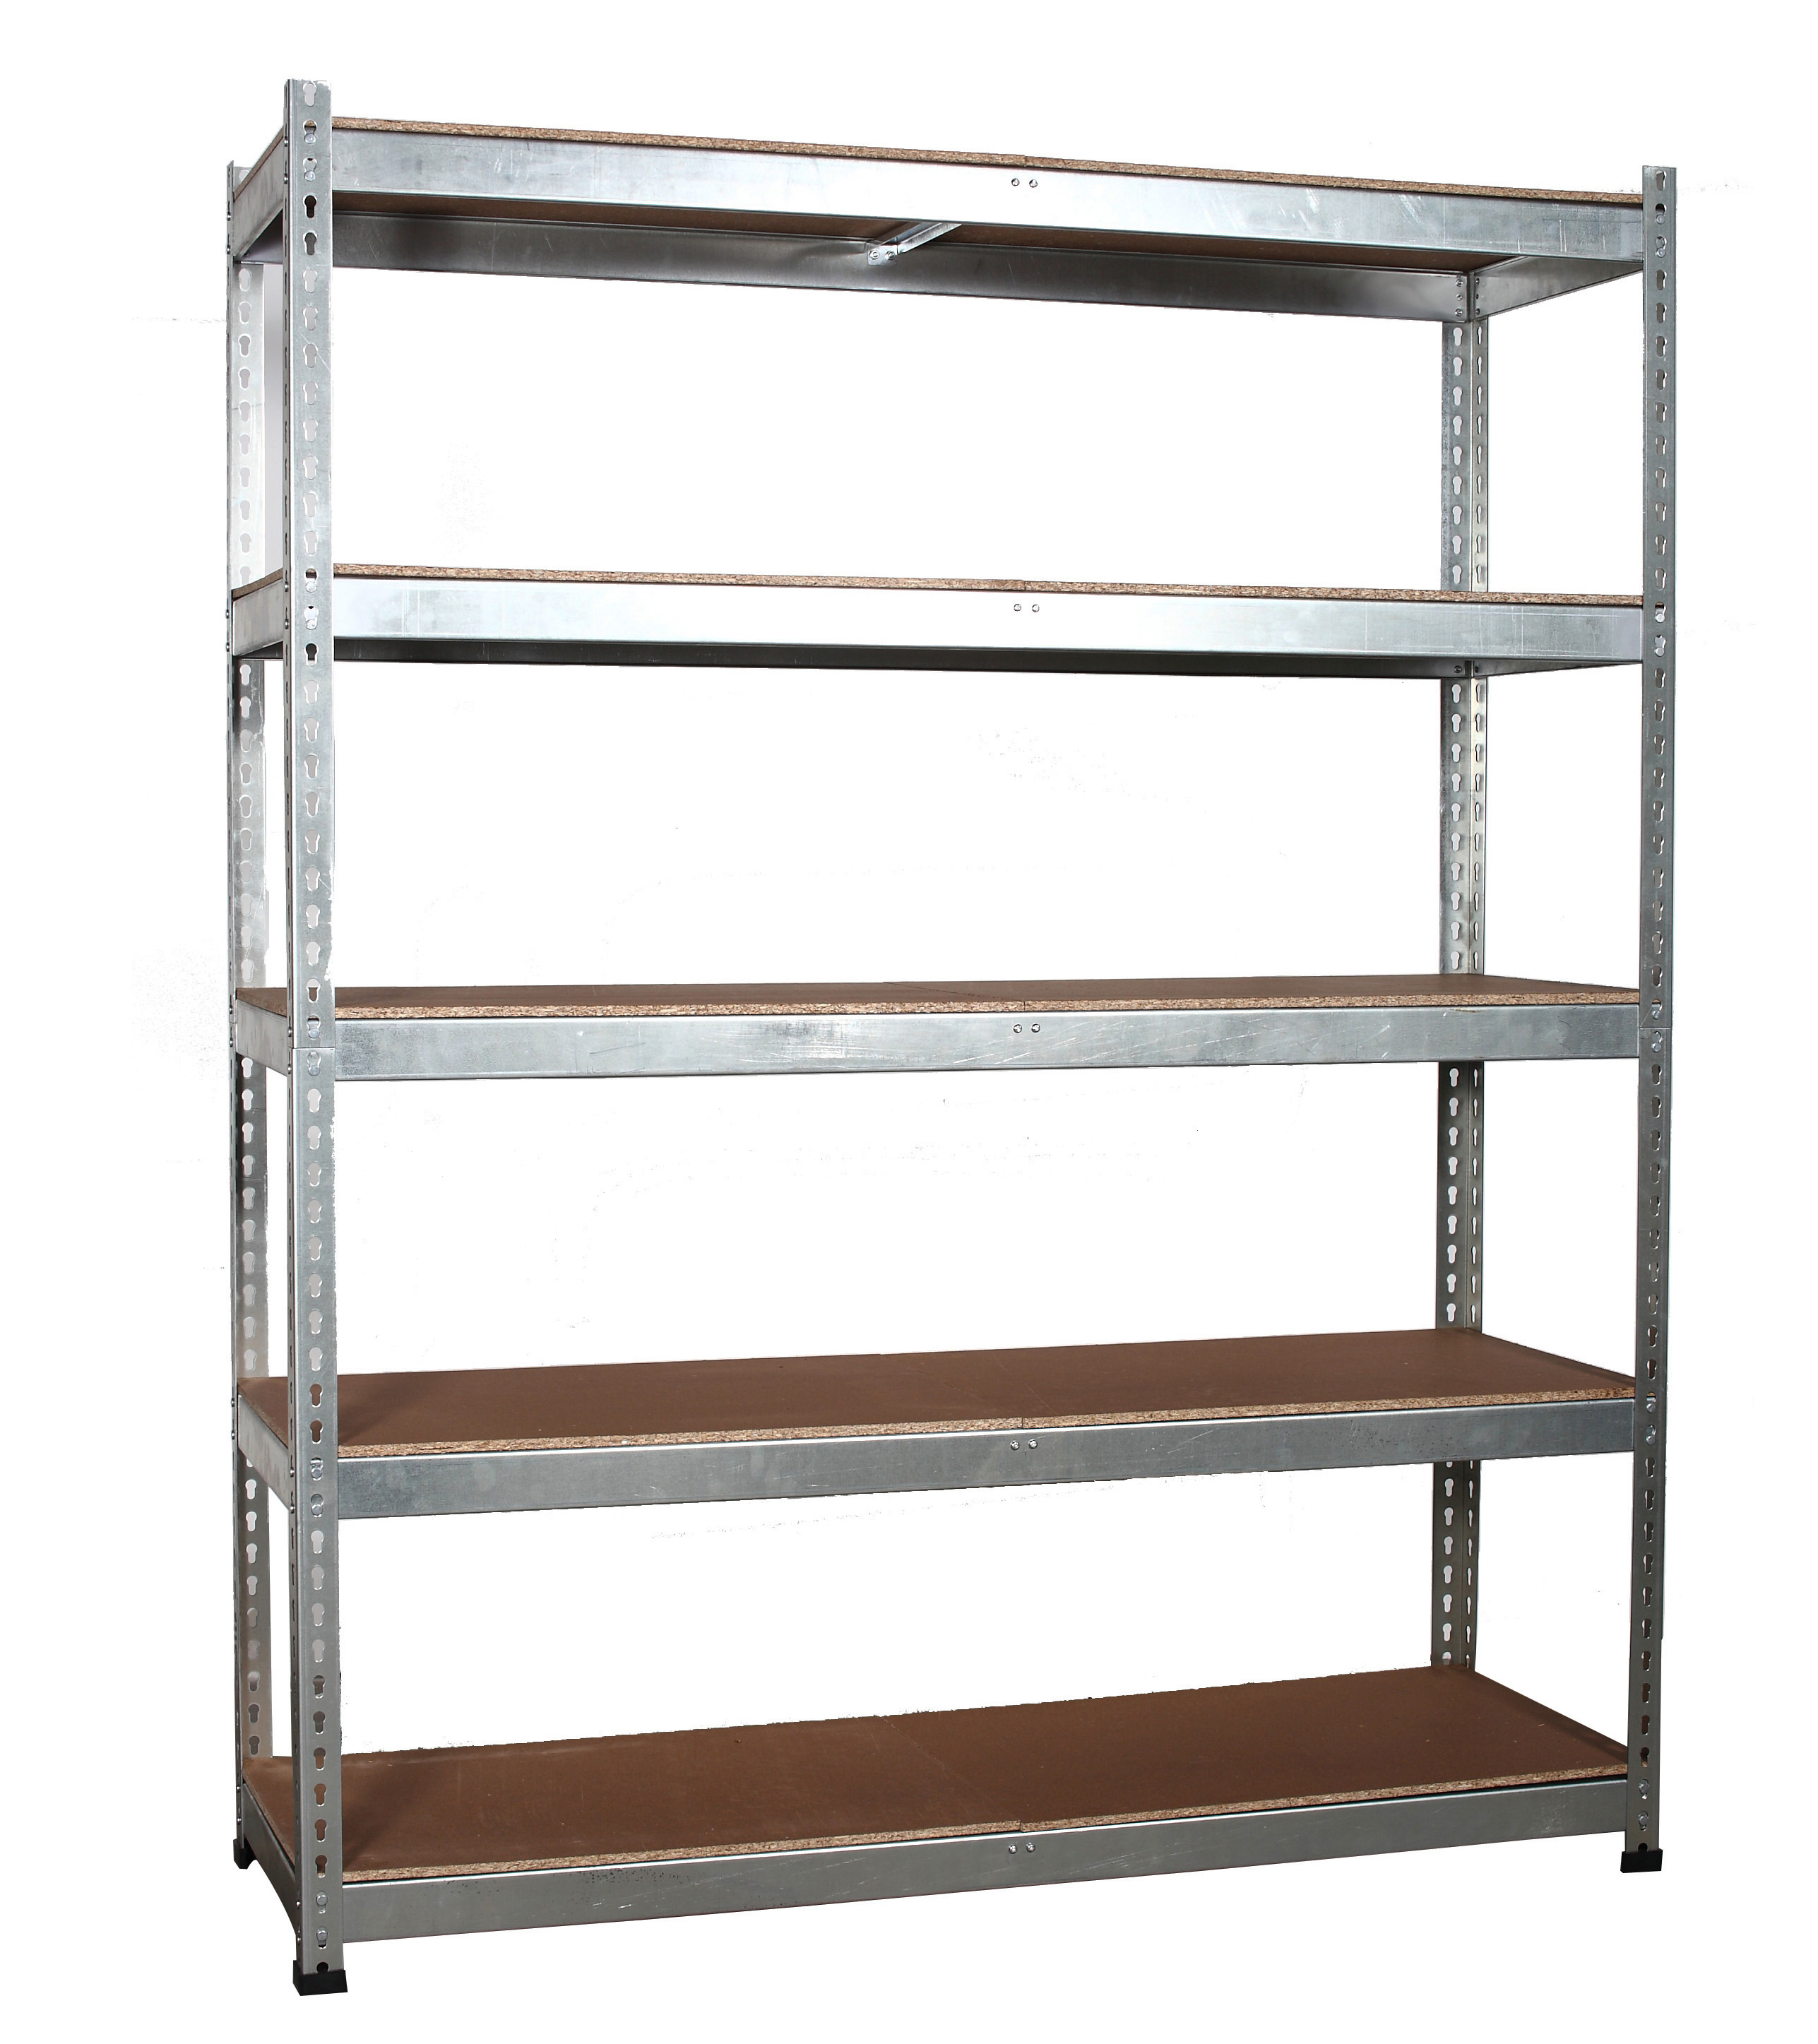 shelf shops rack needs storage duty heavy tier who wire steel index shelving unit